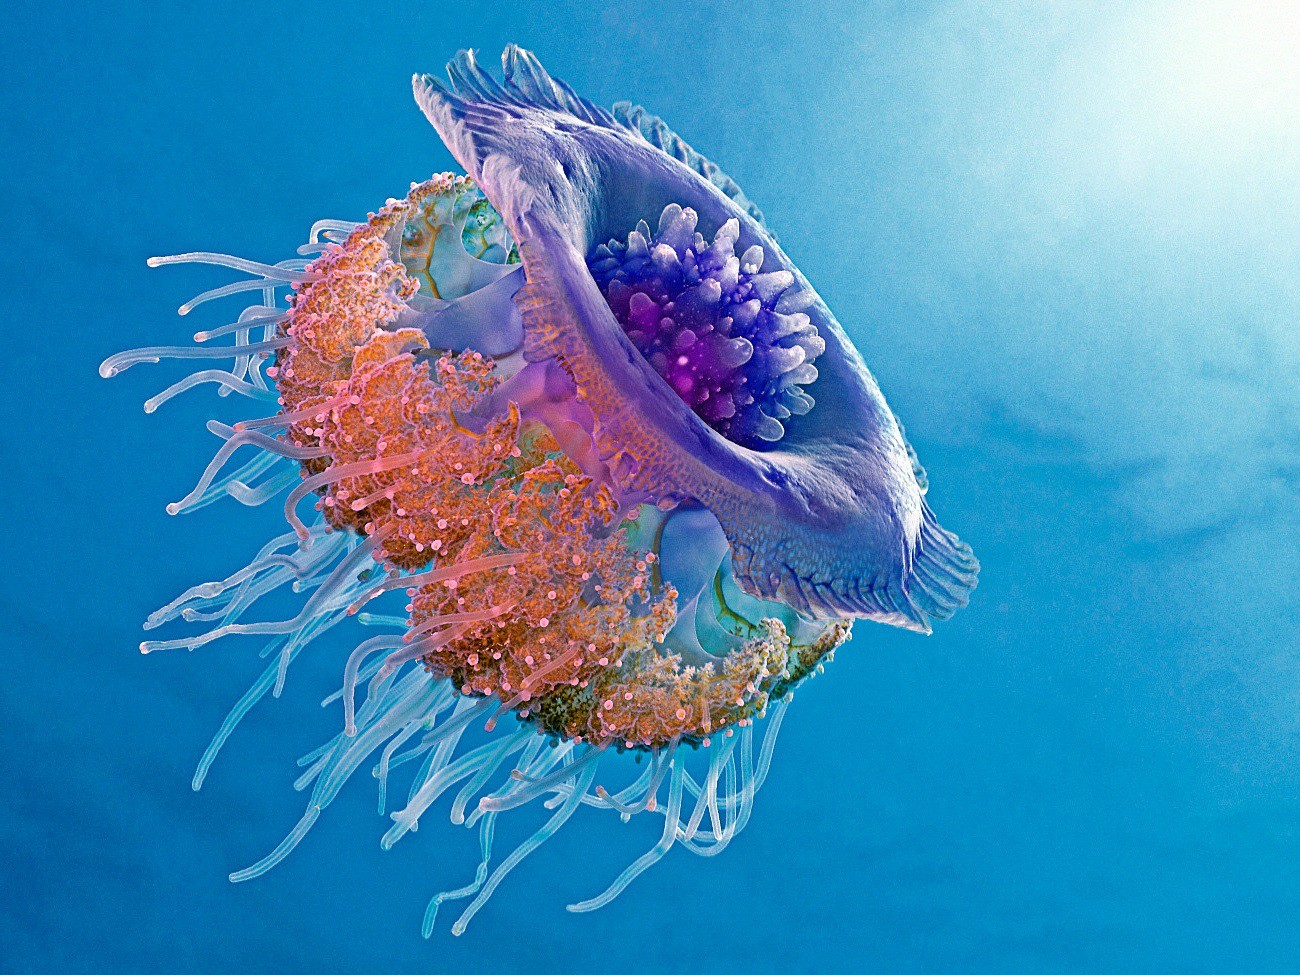 Crown Jellyfish / Cephea cephea